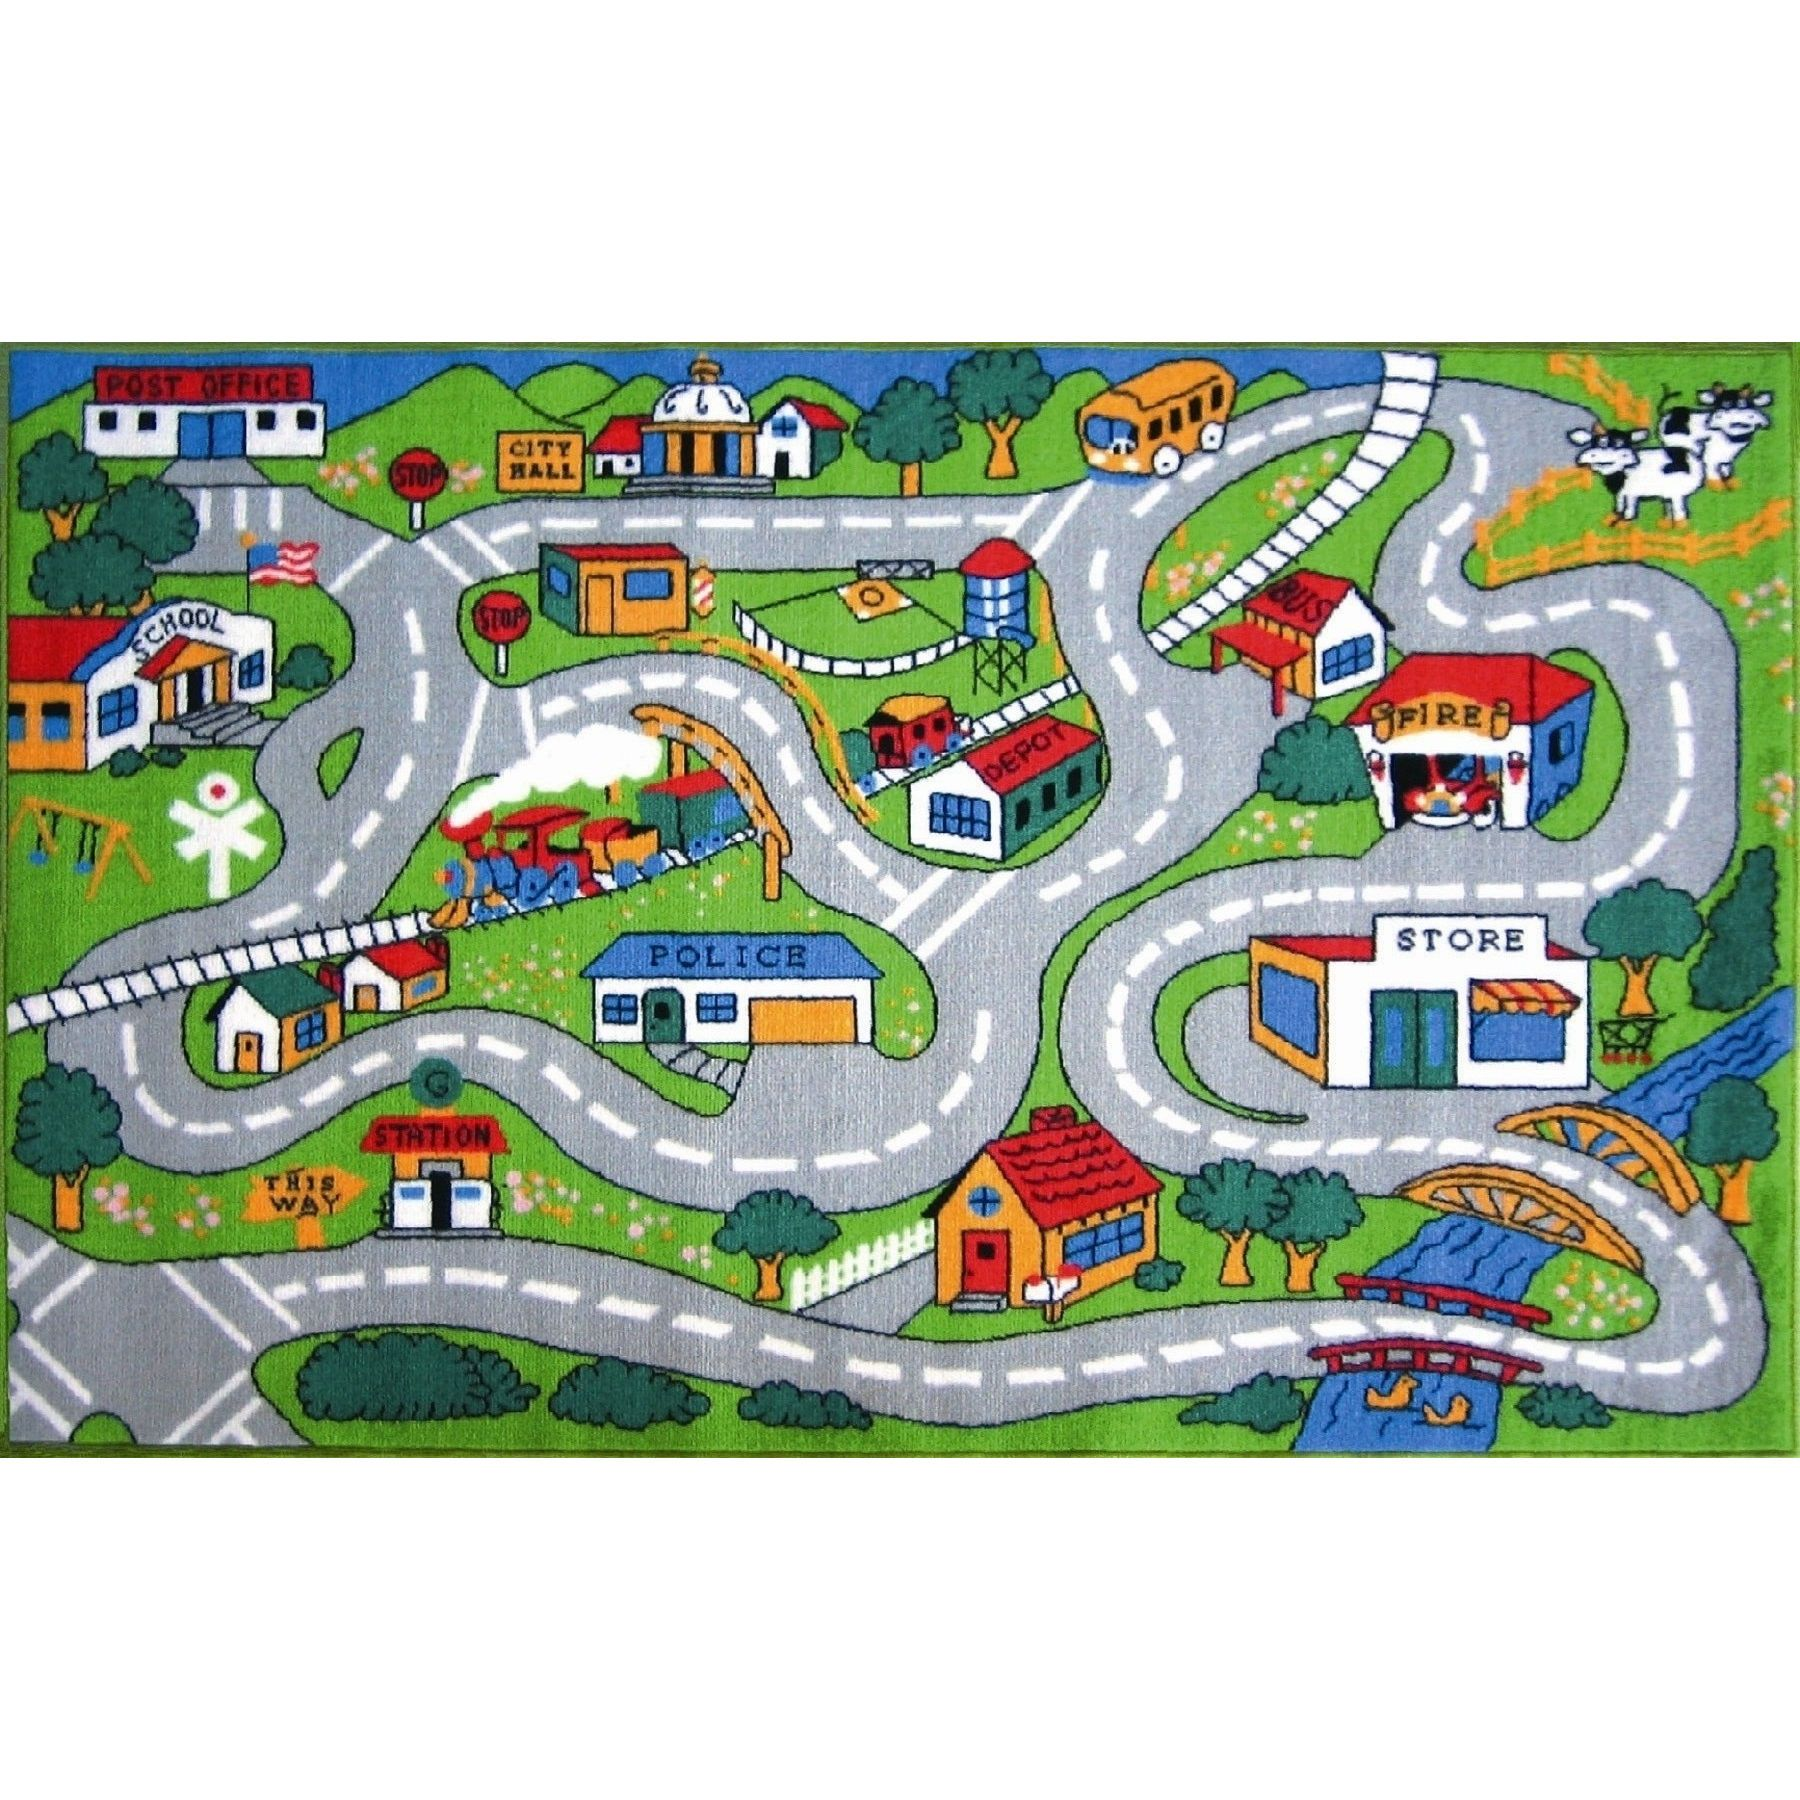 playroom x kids color map educational kc game rugs children learning and road area p ft multi colored cubs bedroom rug